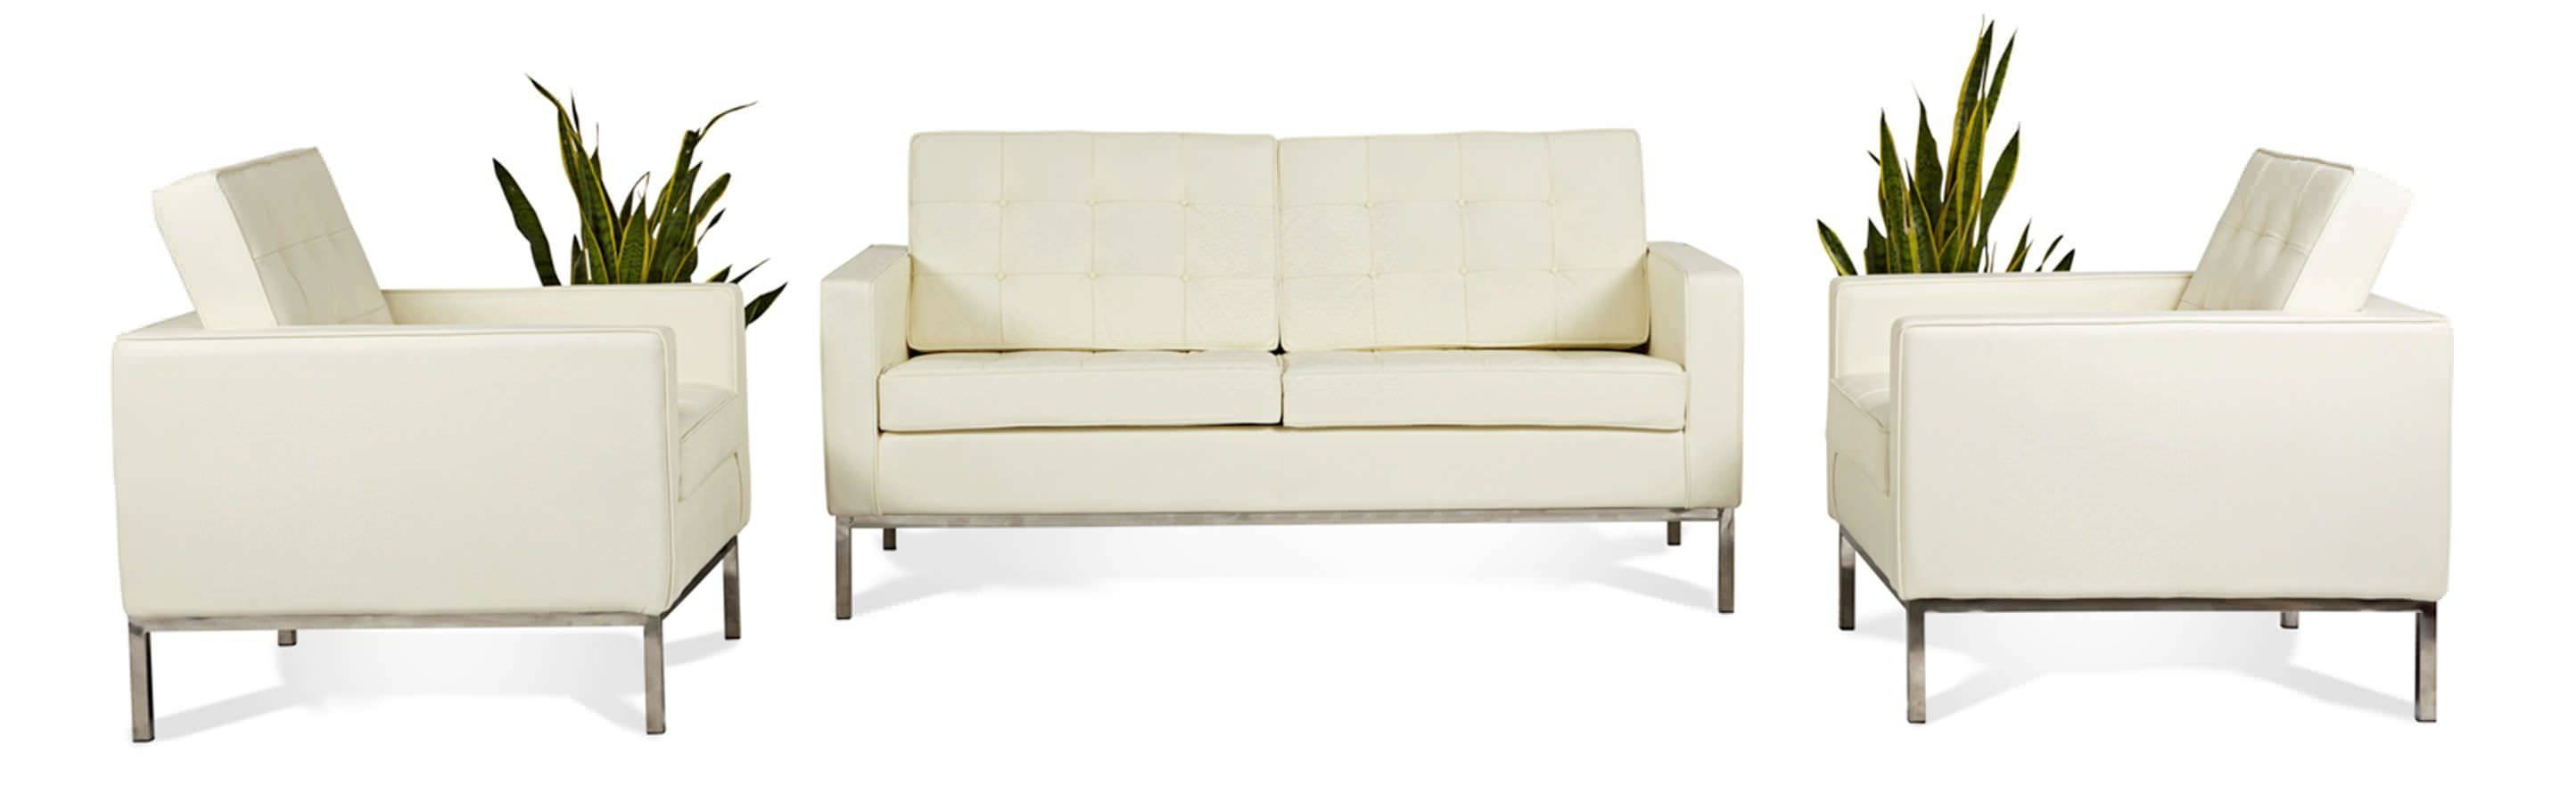 Florence Knoll Style Loveseat 2 Seater Small Sofa Mid Century Modern within Florence Sofas And Loveseats (Image 11 of 25)